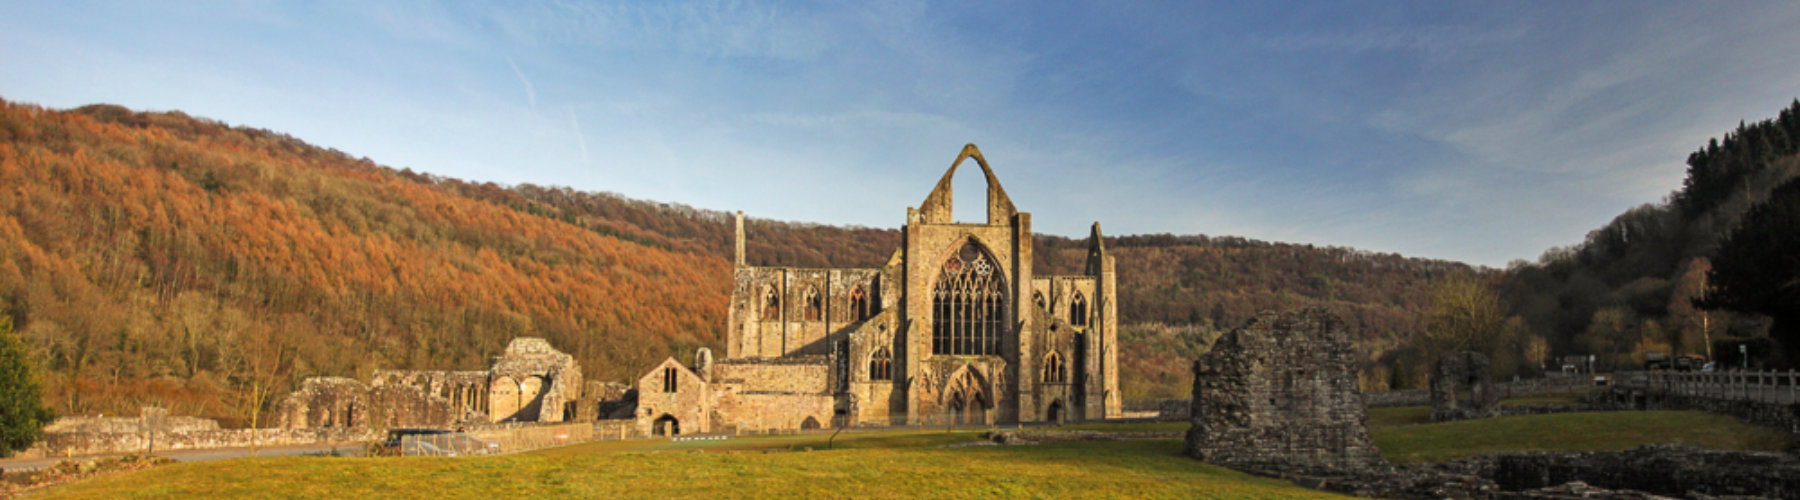 Tintern Abbey Wye Valley Holidays